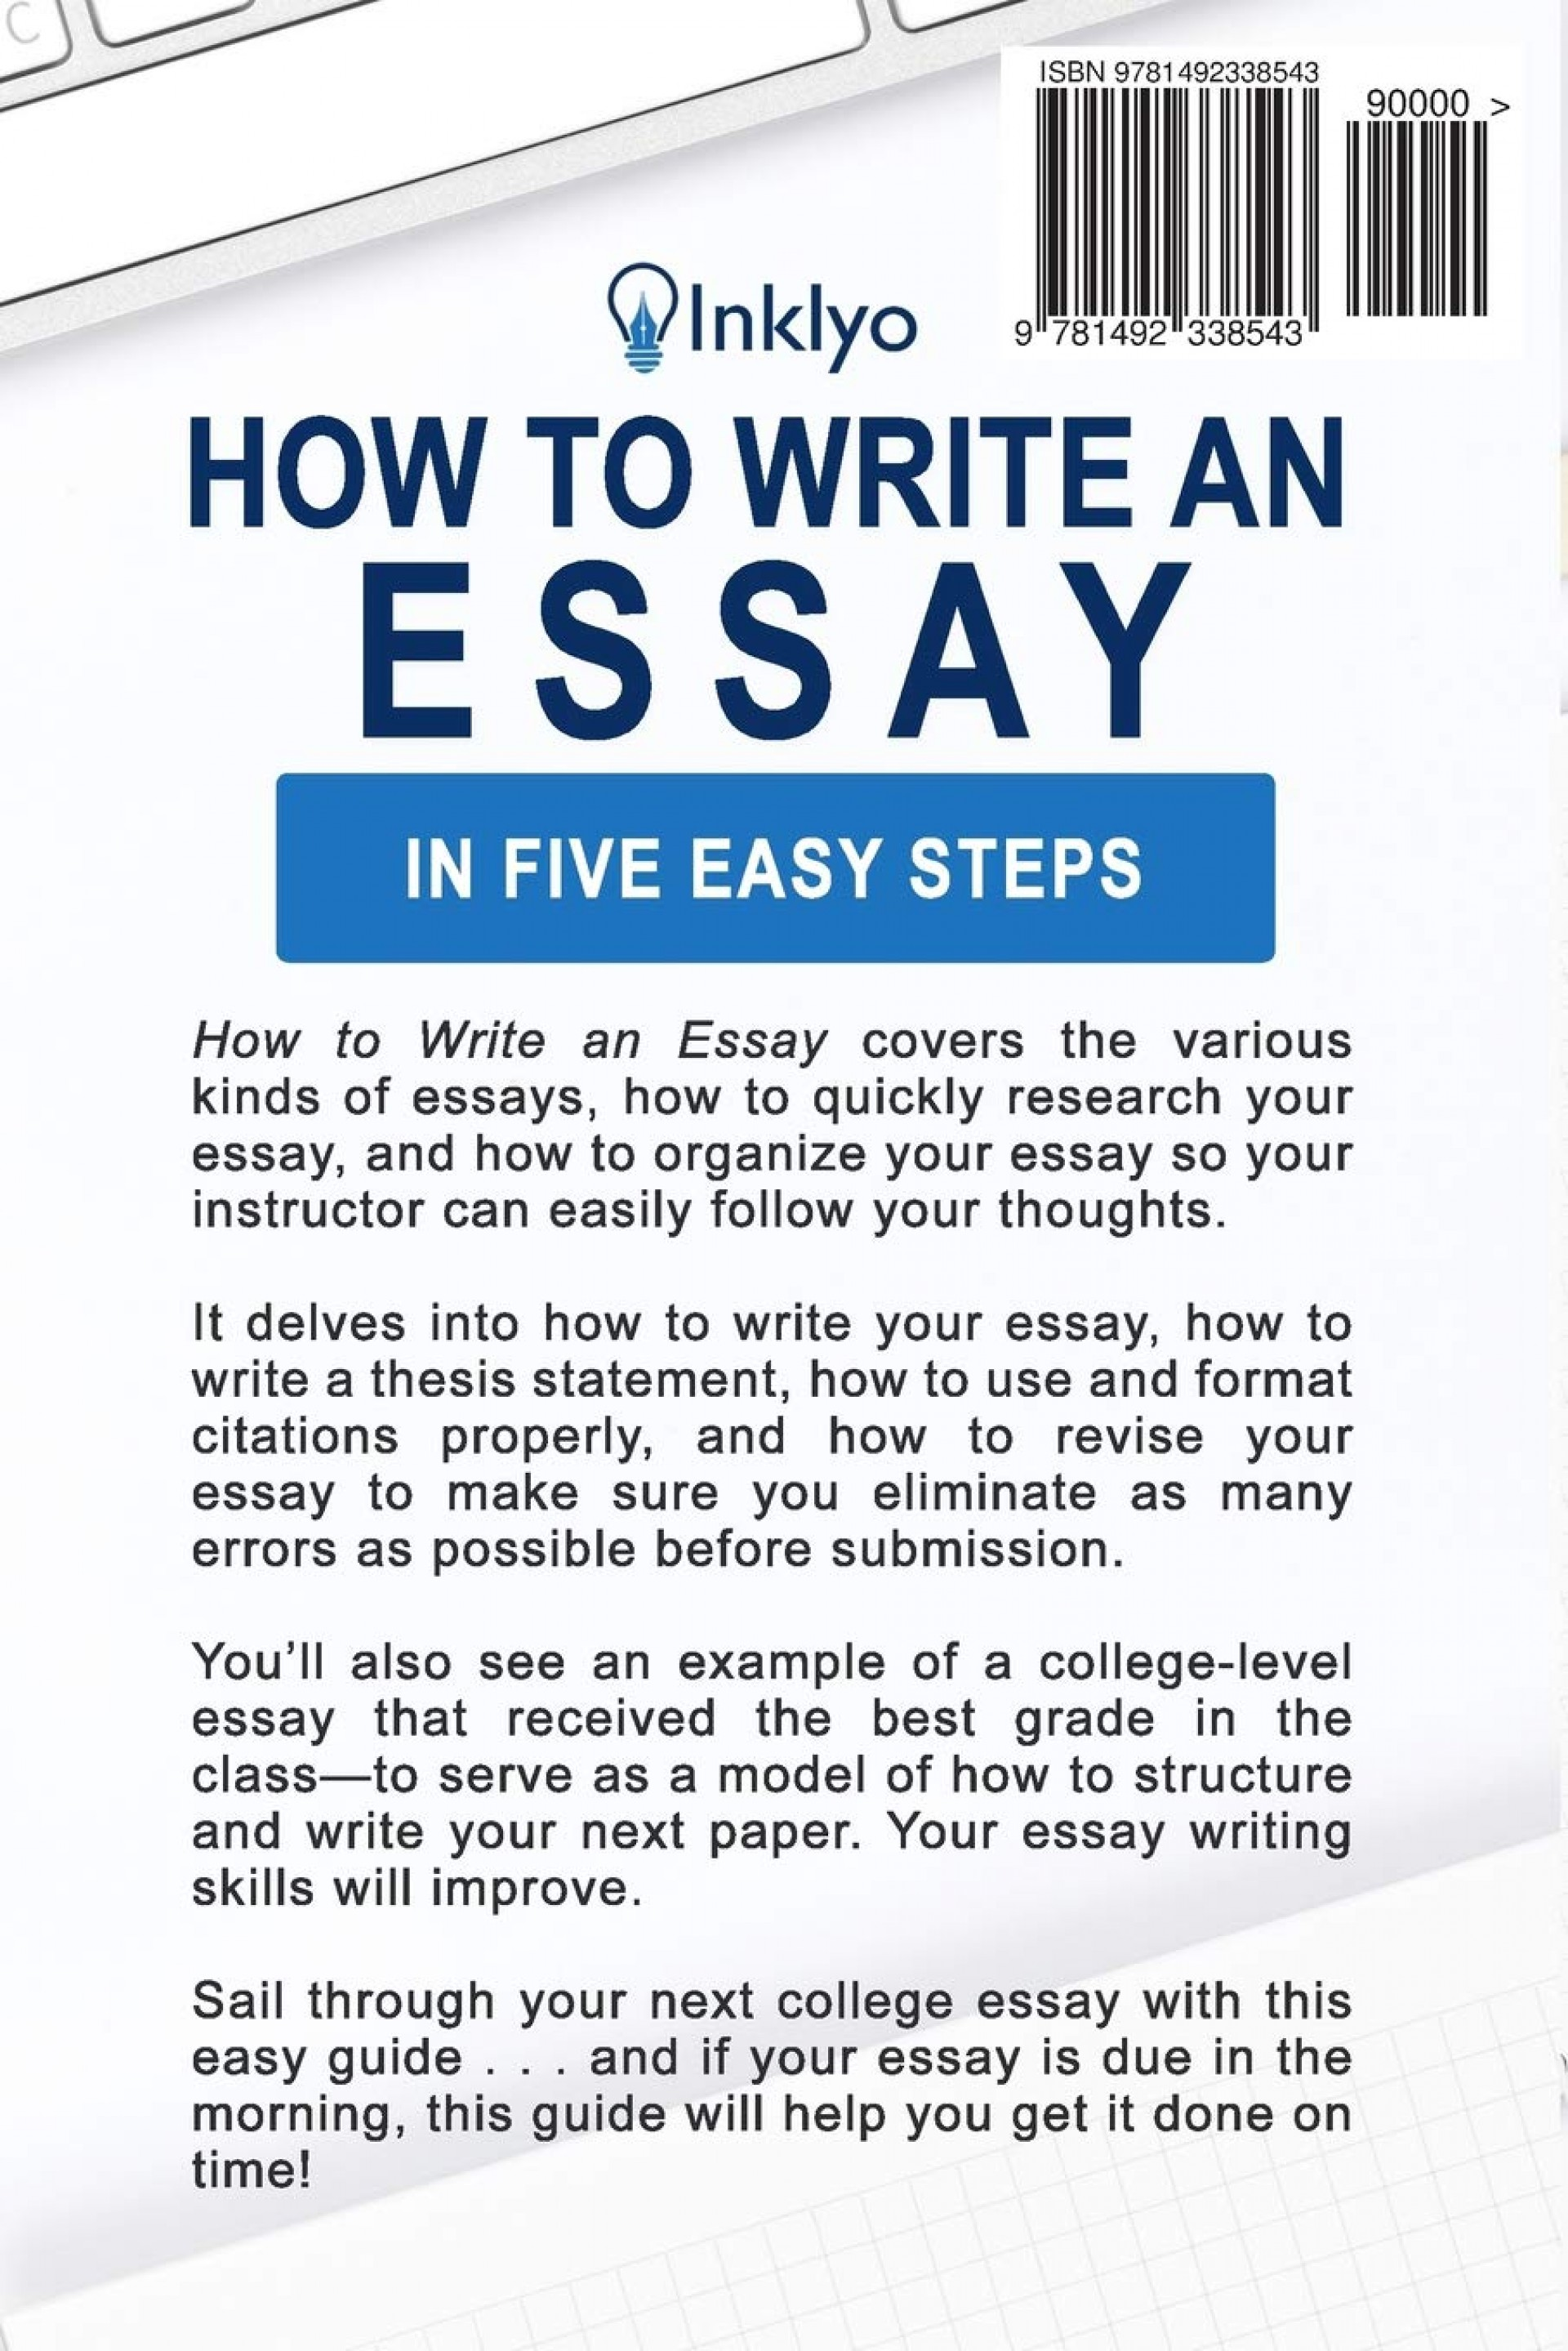 007 How To Do An Essay Example Surprising Write Academic Fast Conclusion On A Book I Cite In Apa Format 1920